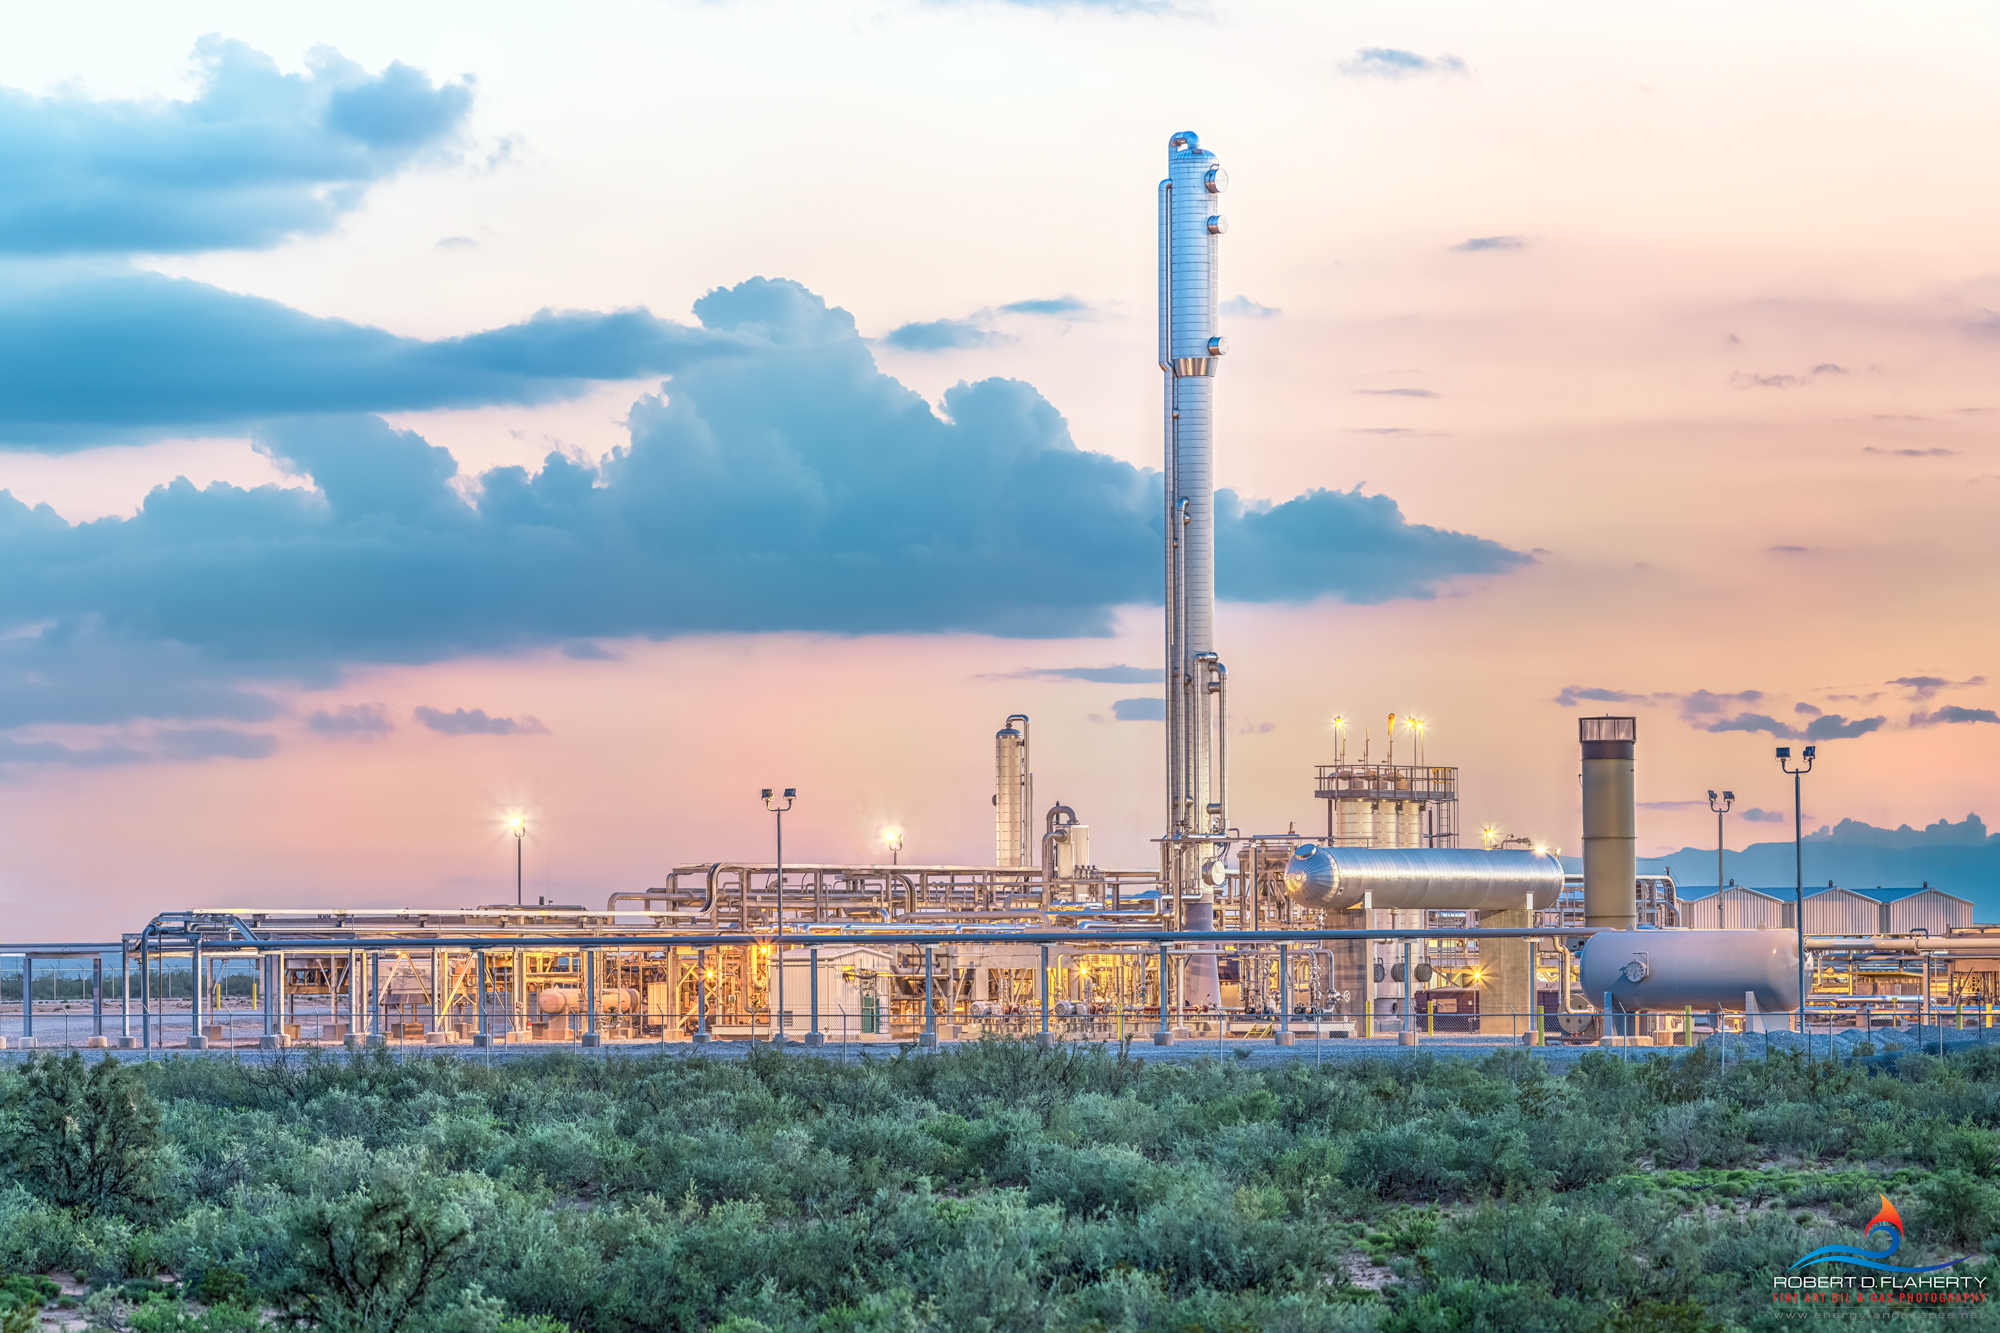 Malaga New Mexico, Delaware Basin, panorama, high resolution, mural, fine art mural, gas plant, midstream oil & gas, sunset, gold, side lit, Permian Basin, photo